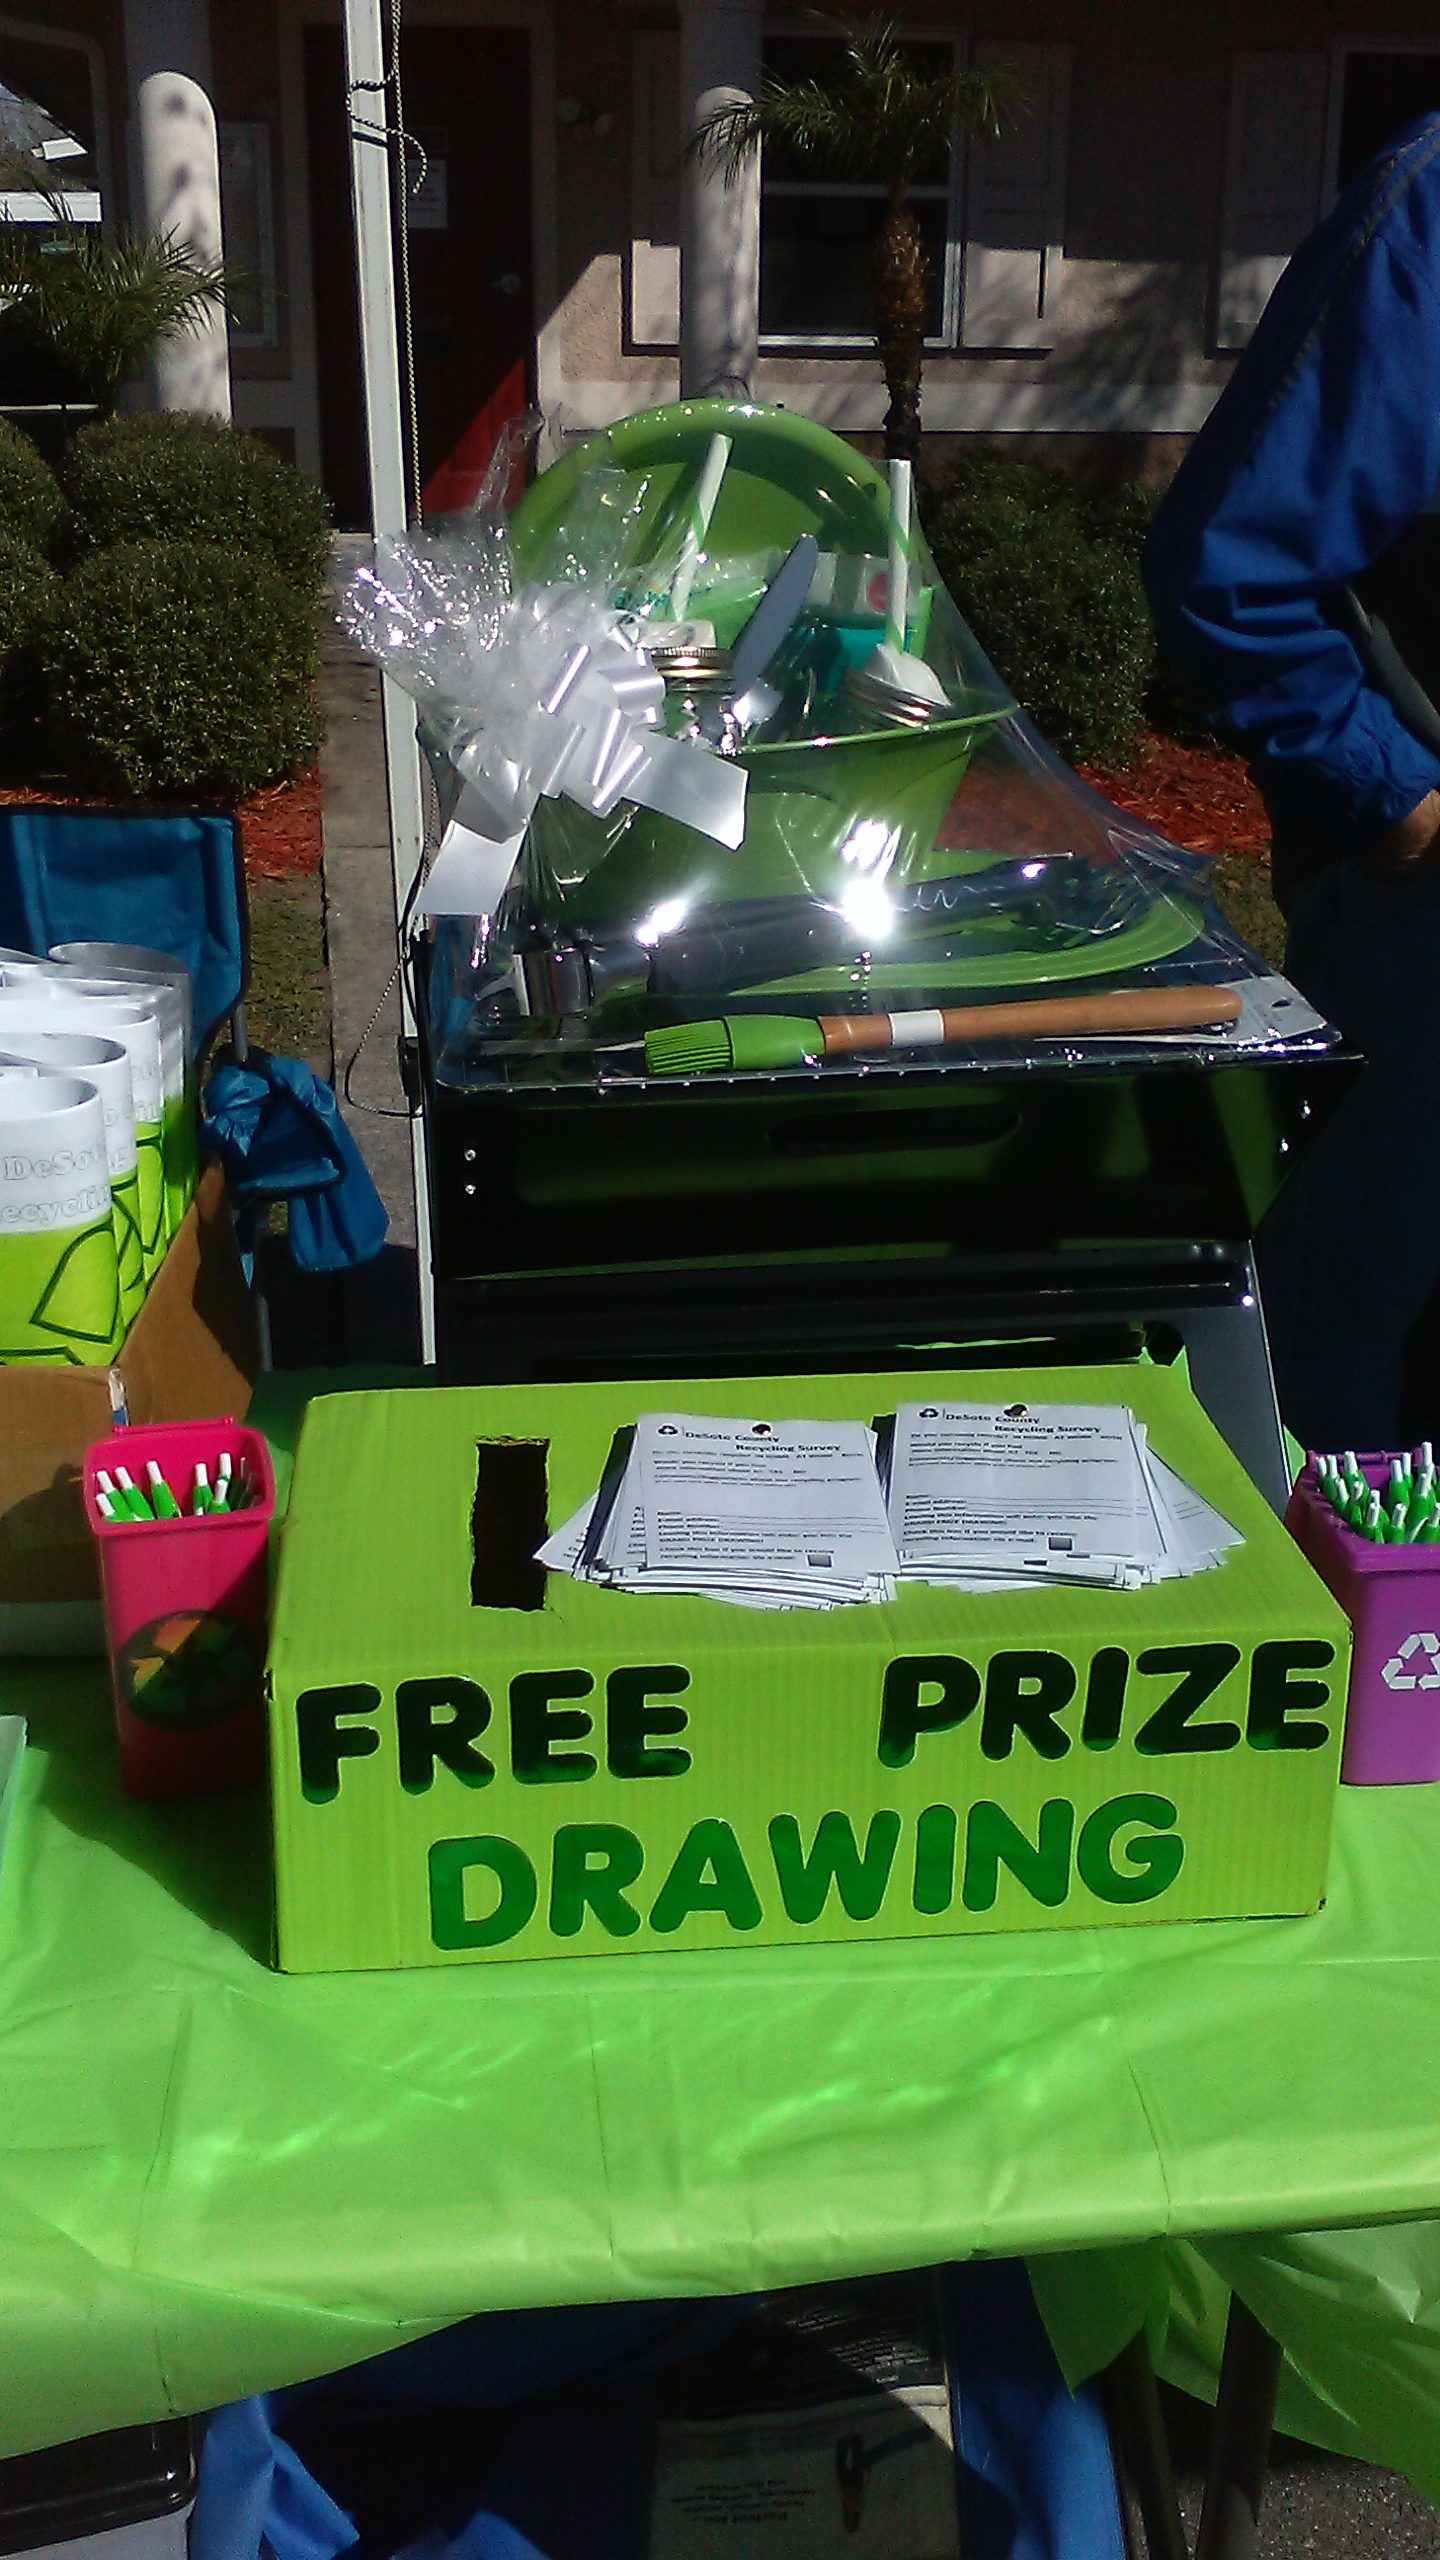 Recycle Prize Drawing Box